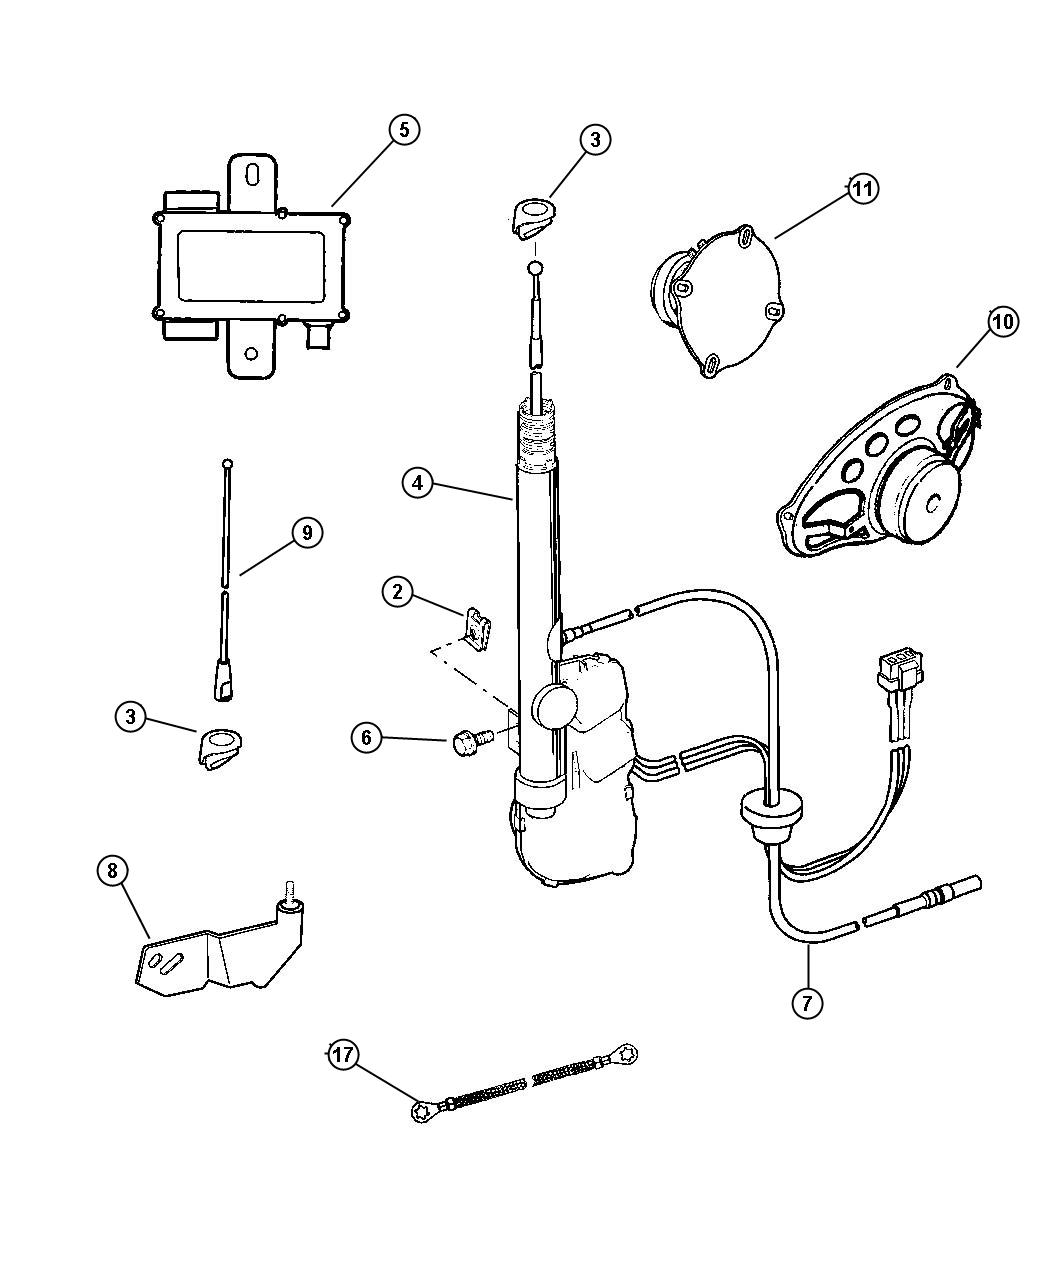 1997 Dodge Intrepid Engine Diagram, 1997, Free Engine